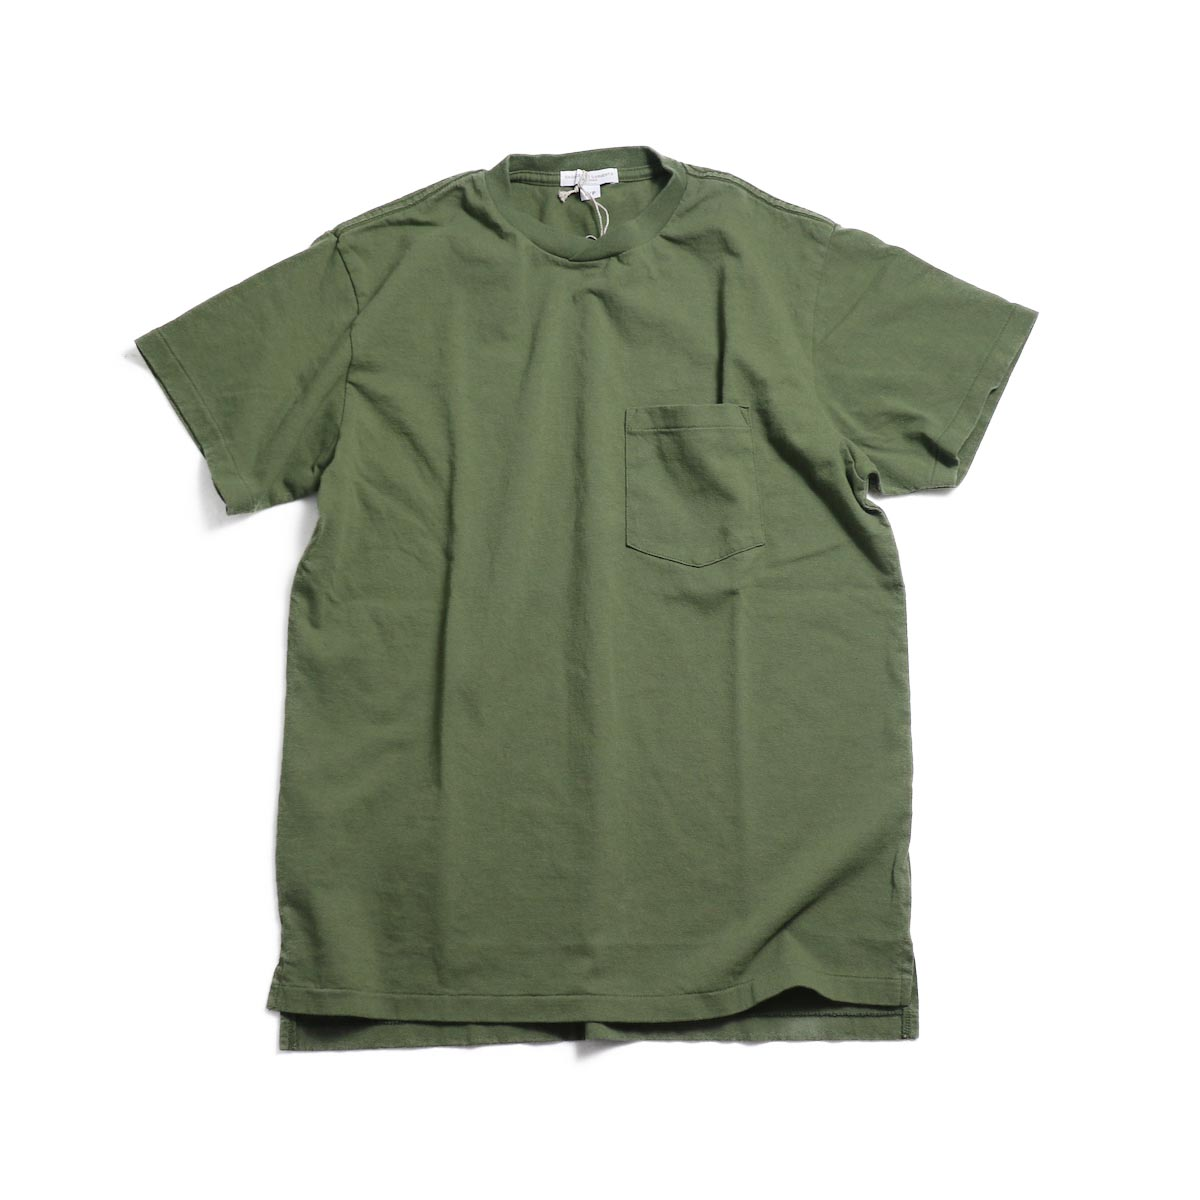 ENGINEERED GARMENTS Workaday / Crossover Neck Pocket Tee -Olive